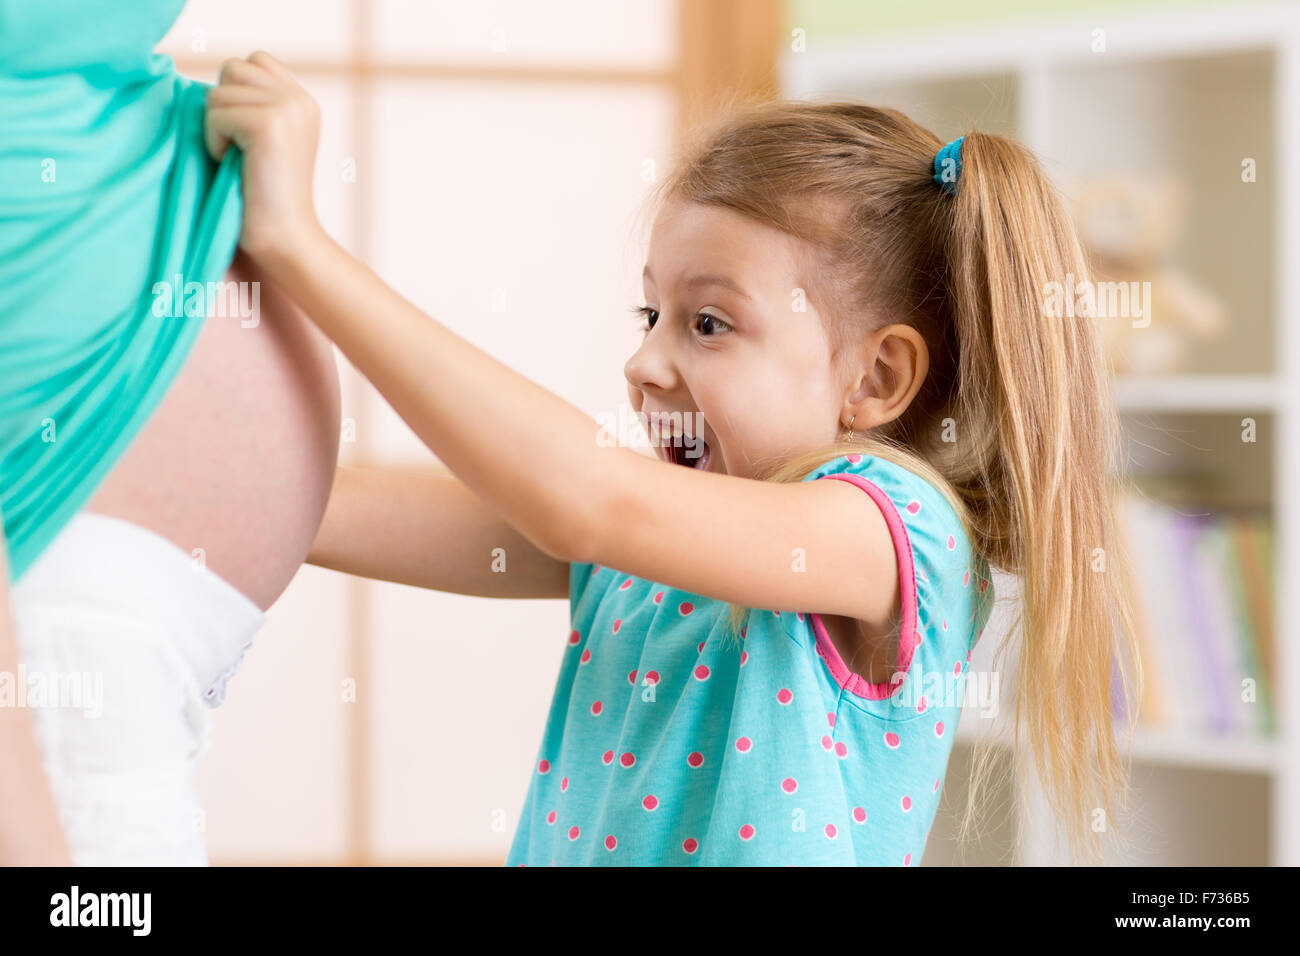 Little child girl looking at mother pregnant tummy - Stock Image